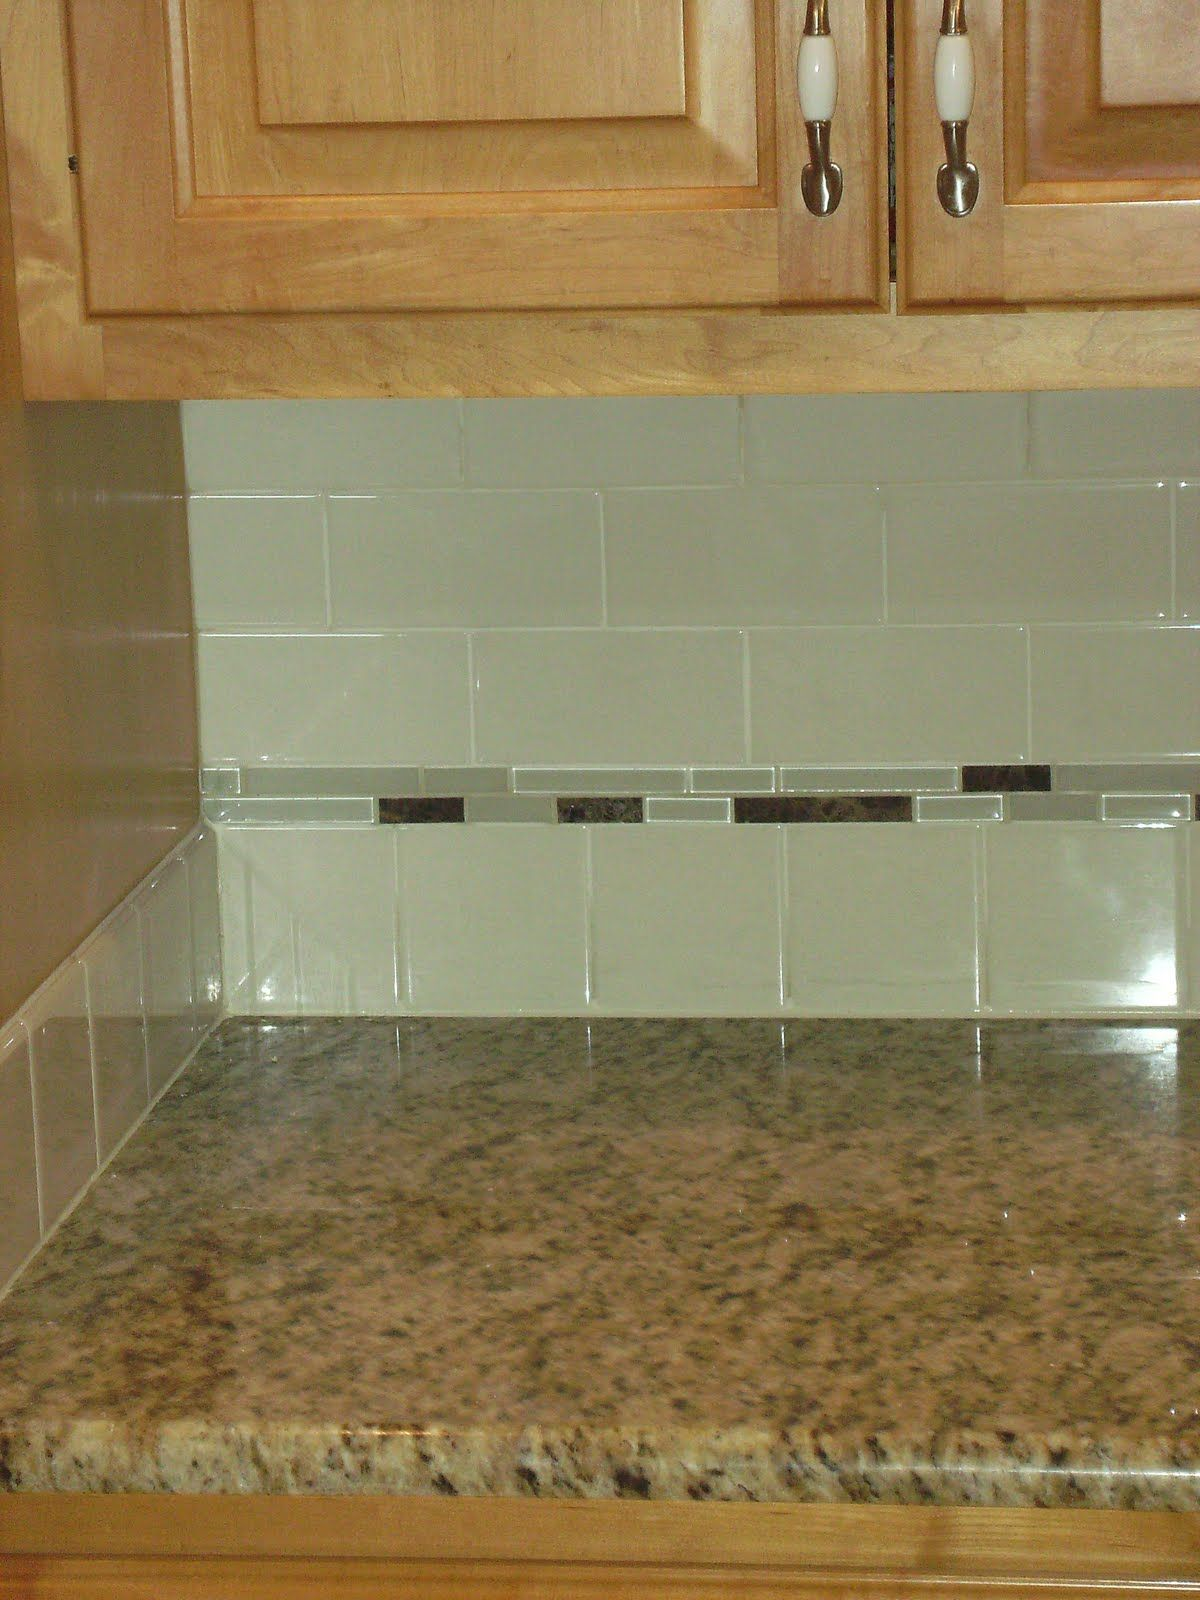 Green Glass Tile Backsplash Ideas Part - 30: Green Glass Subway Tiles With Small Grey Glass Accent Tiles - Google Search